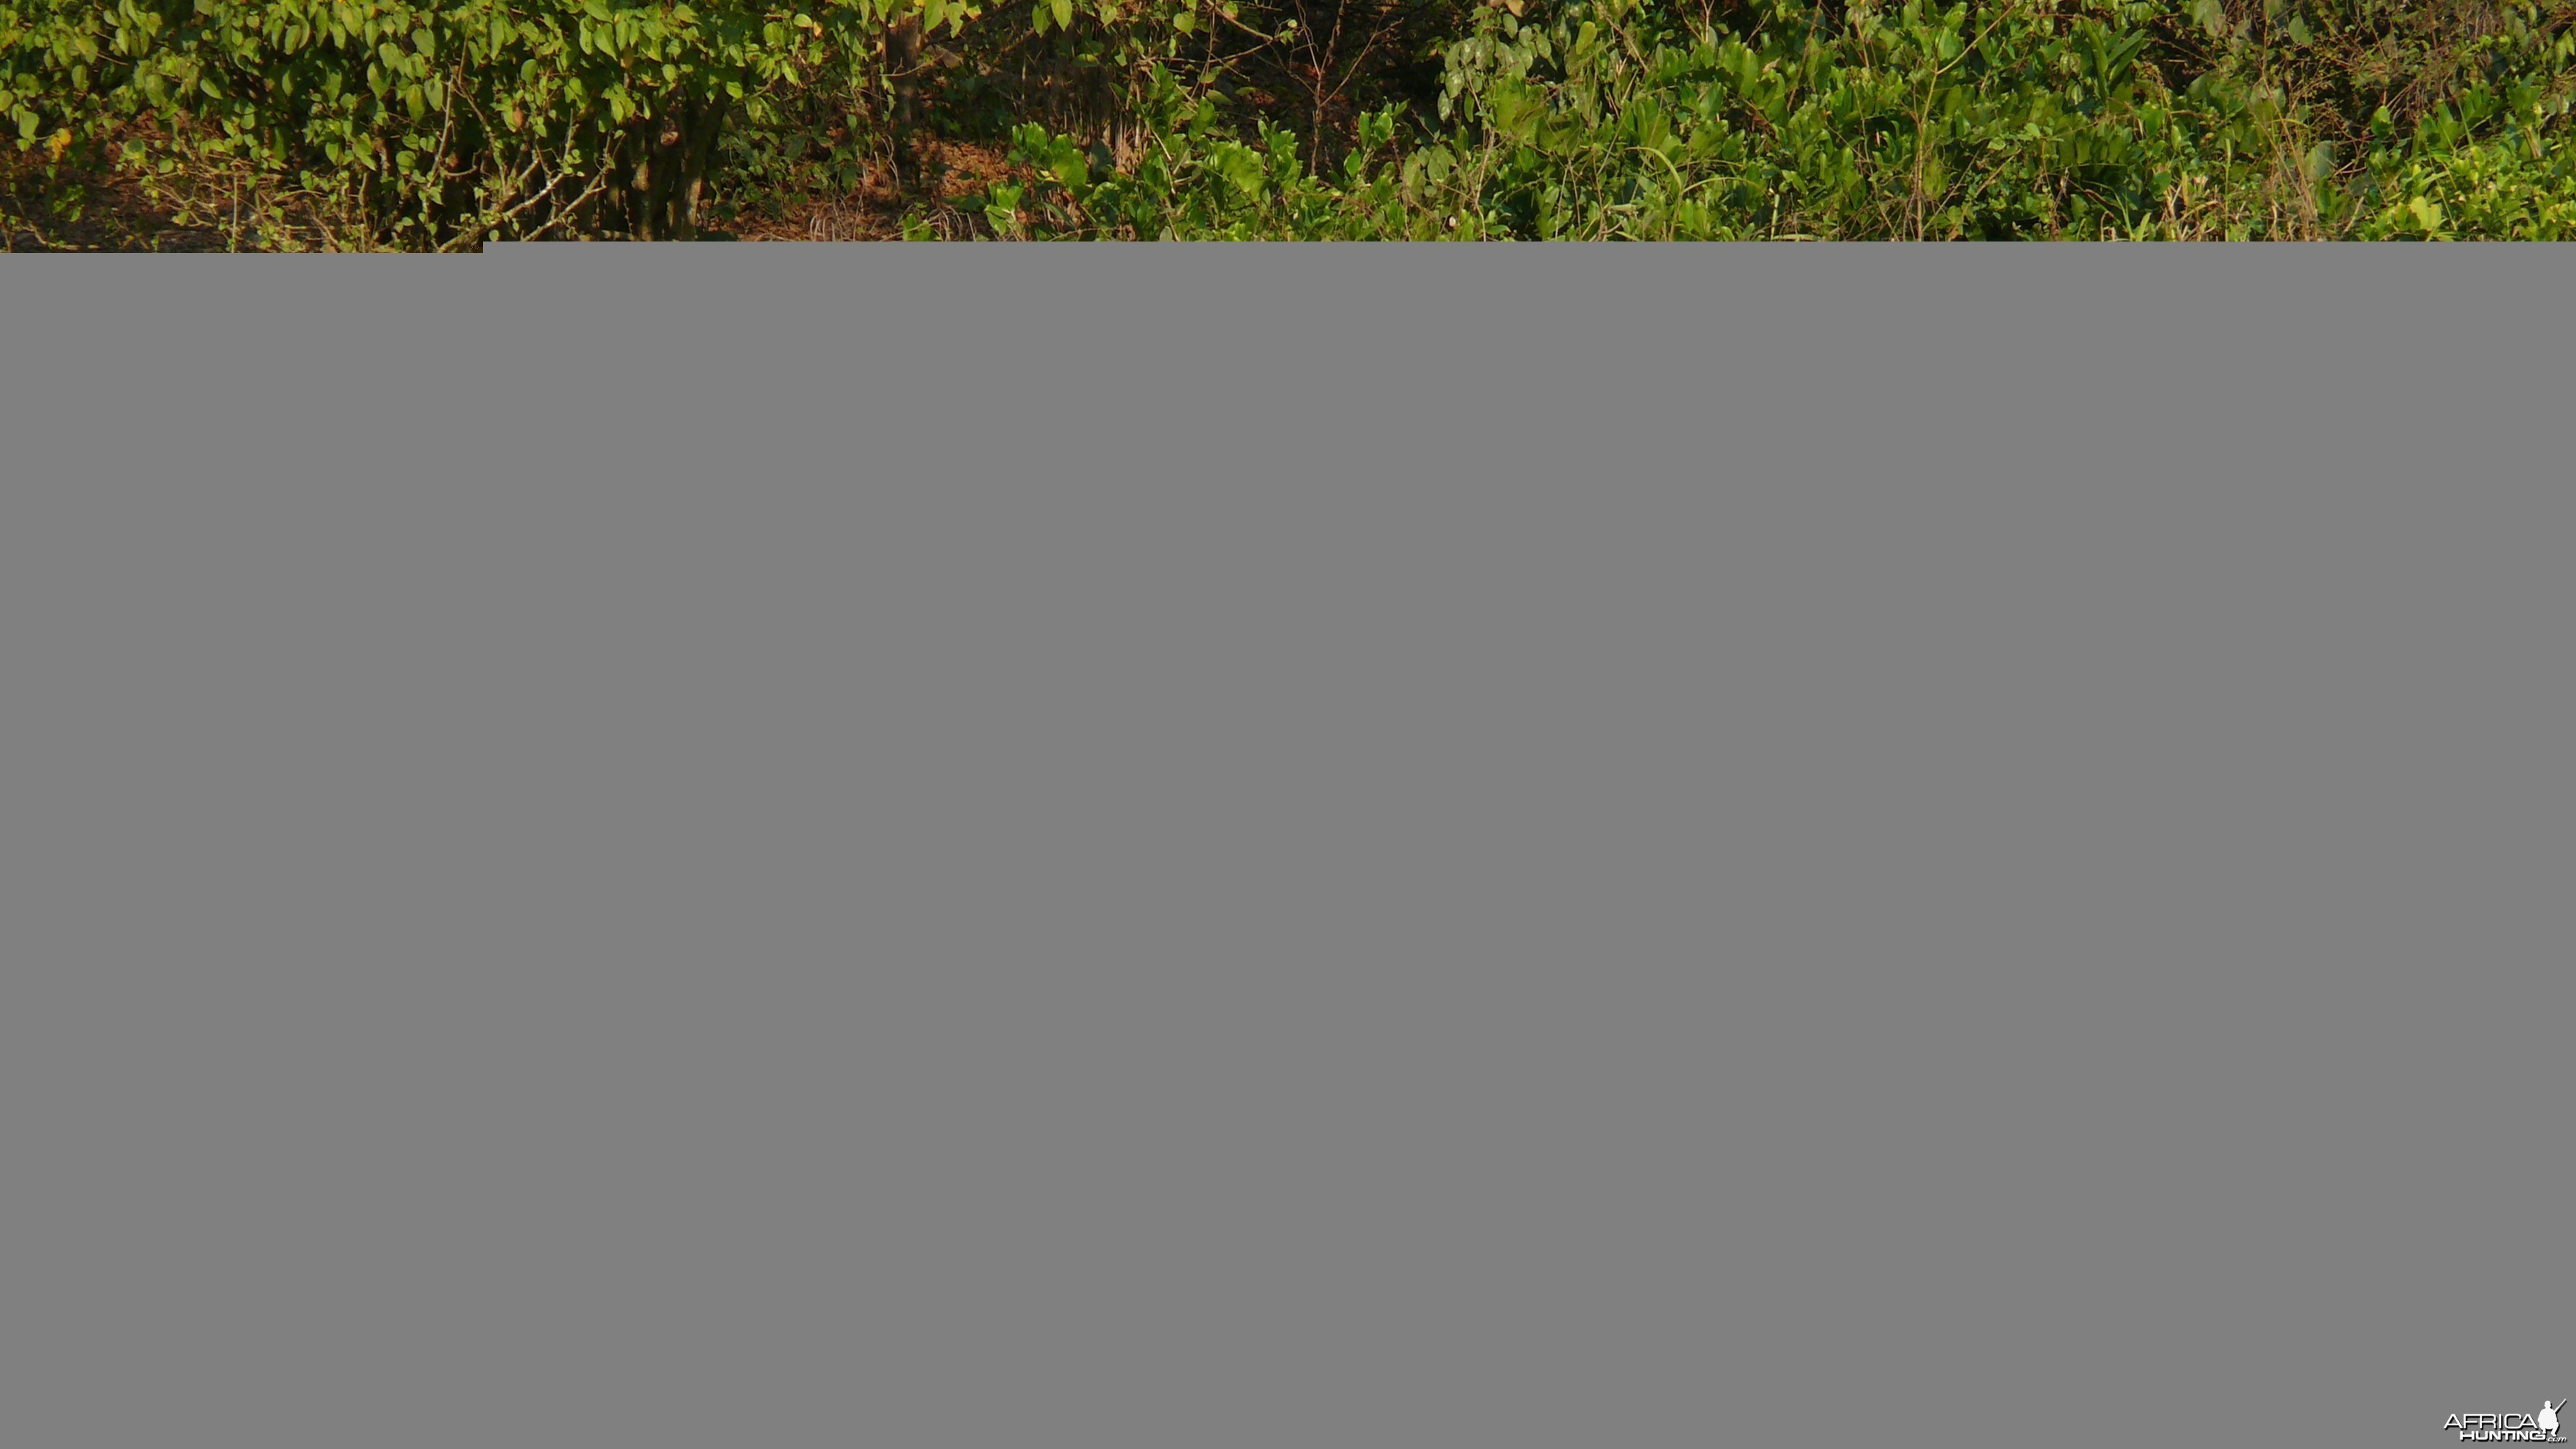 Bongo in Central African Republic